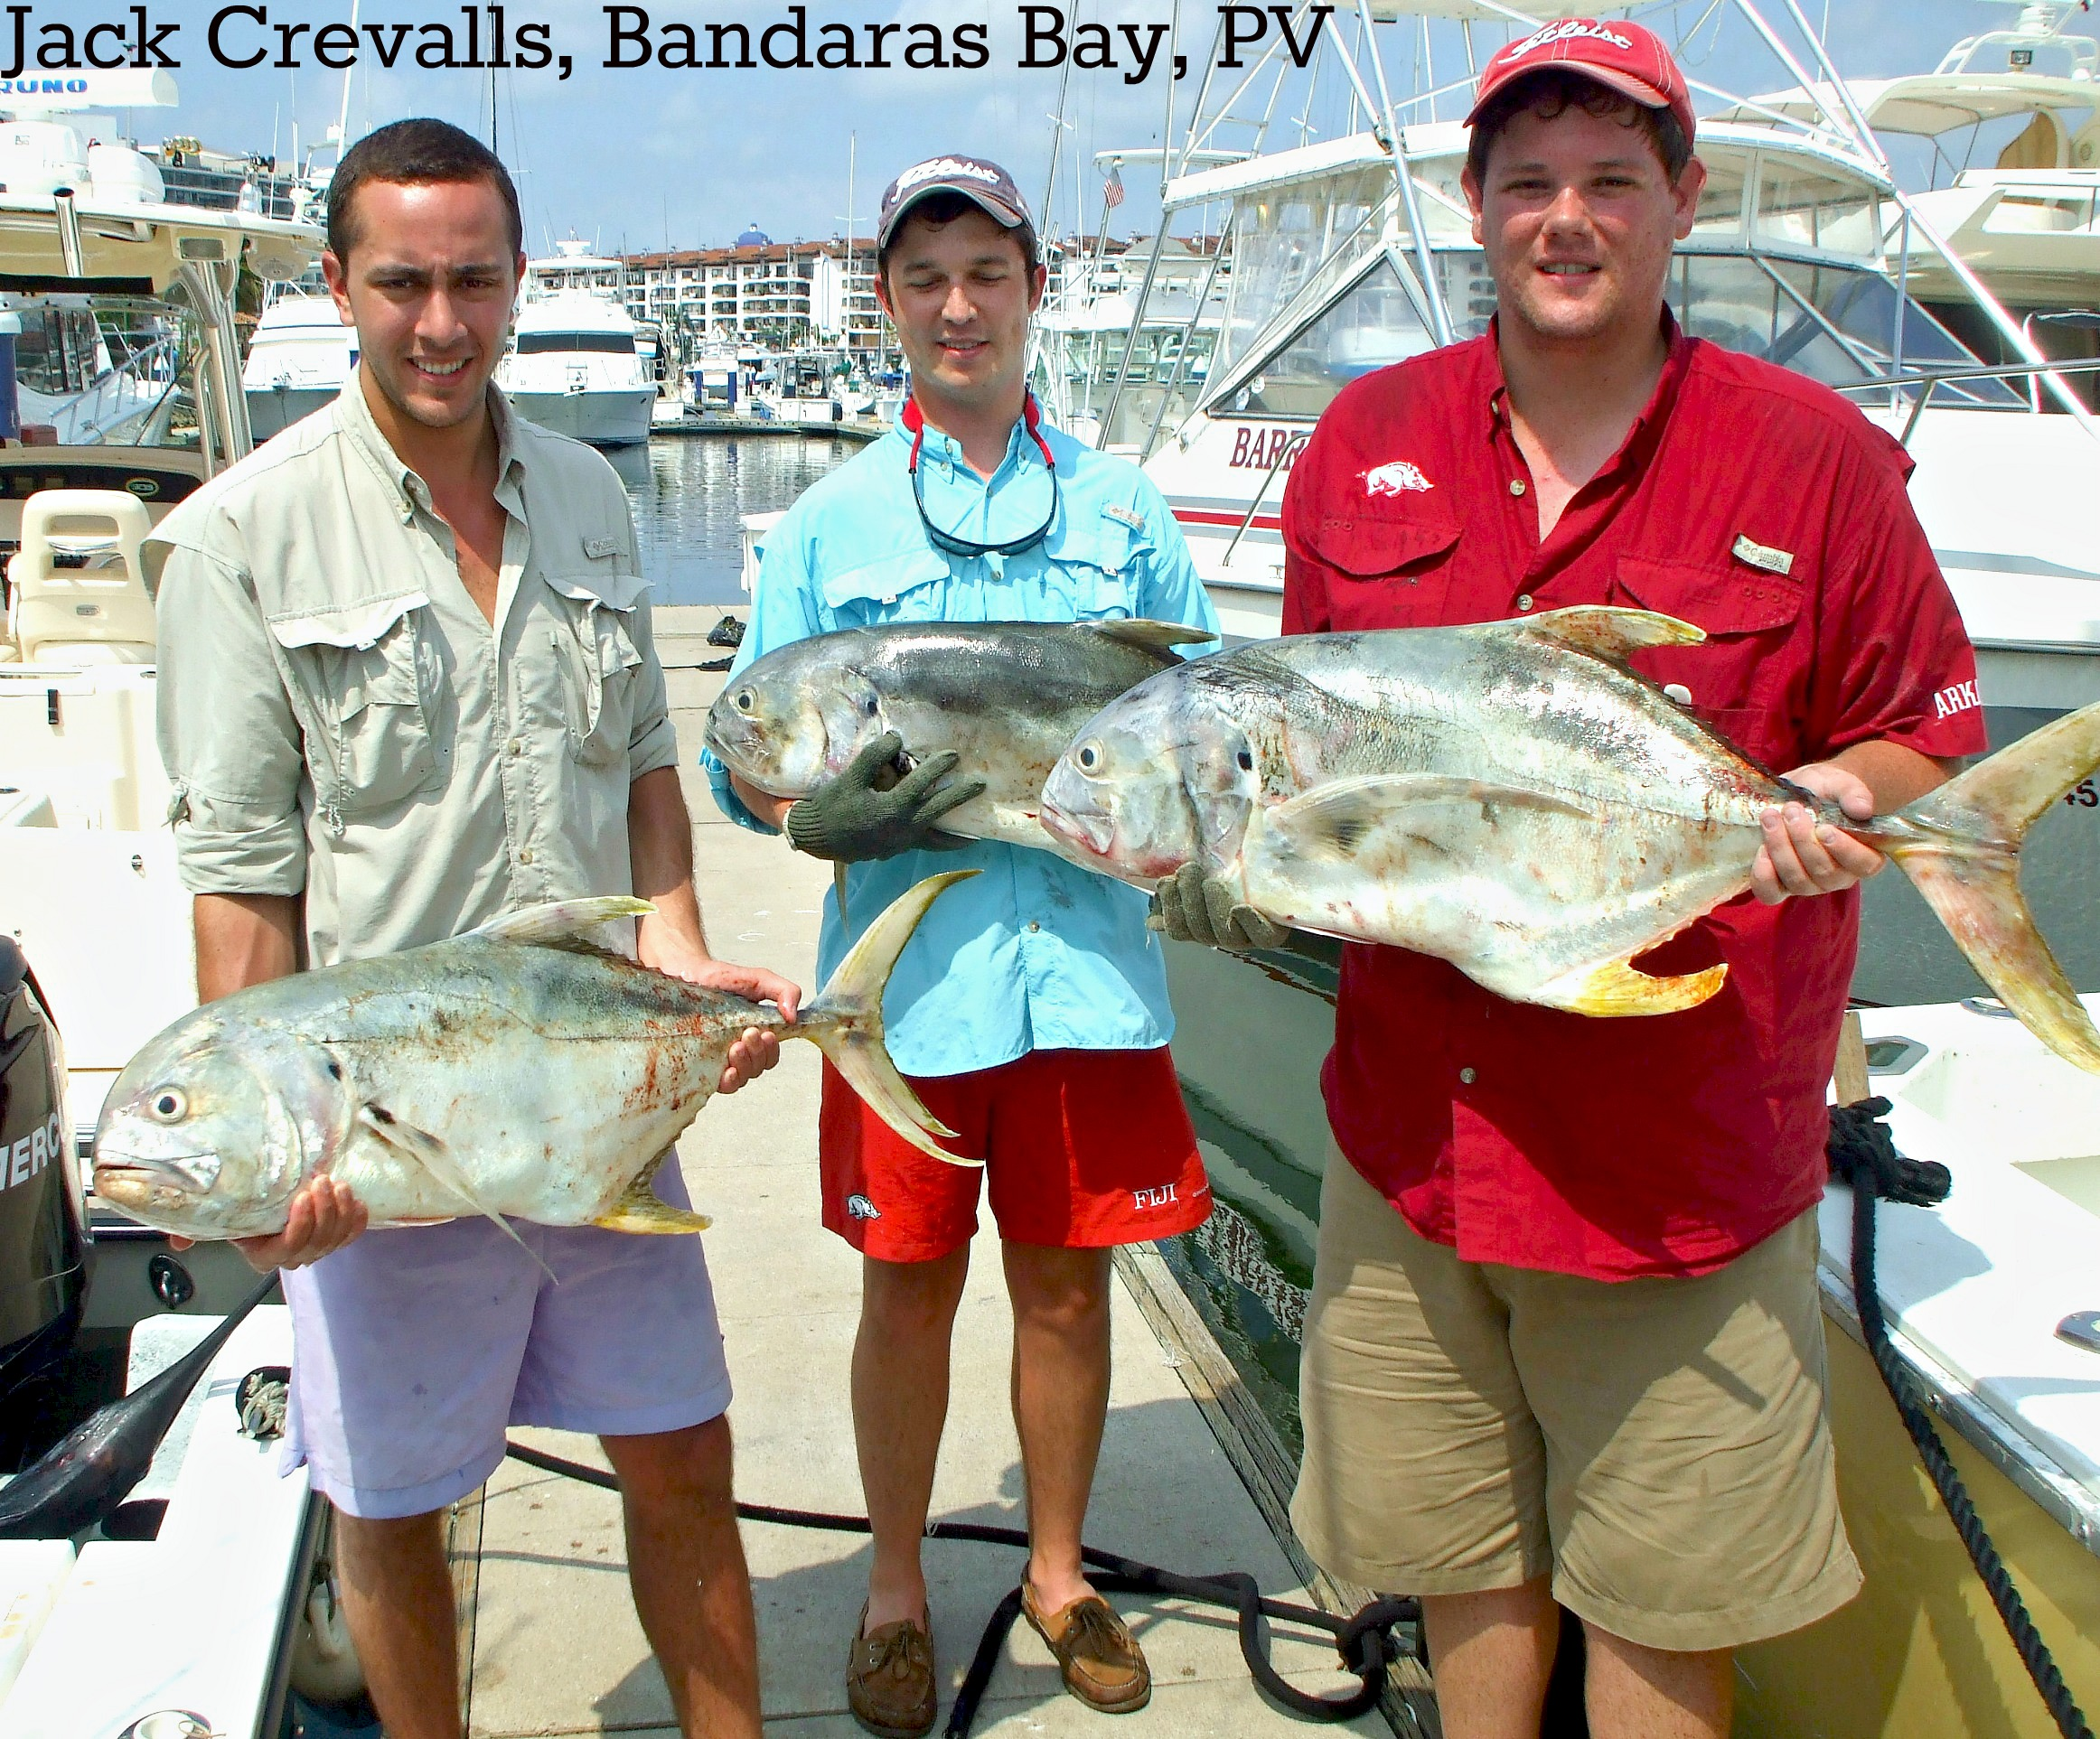 Travel Archives - Page 16 of 39 - Master Baiters